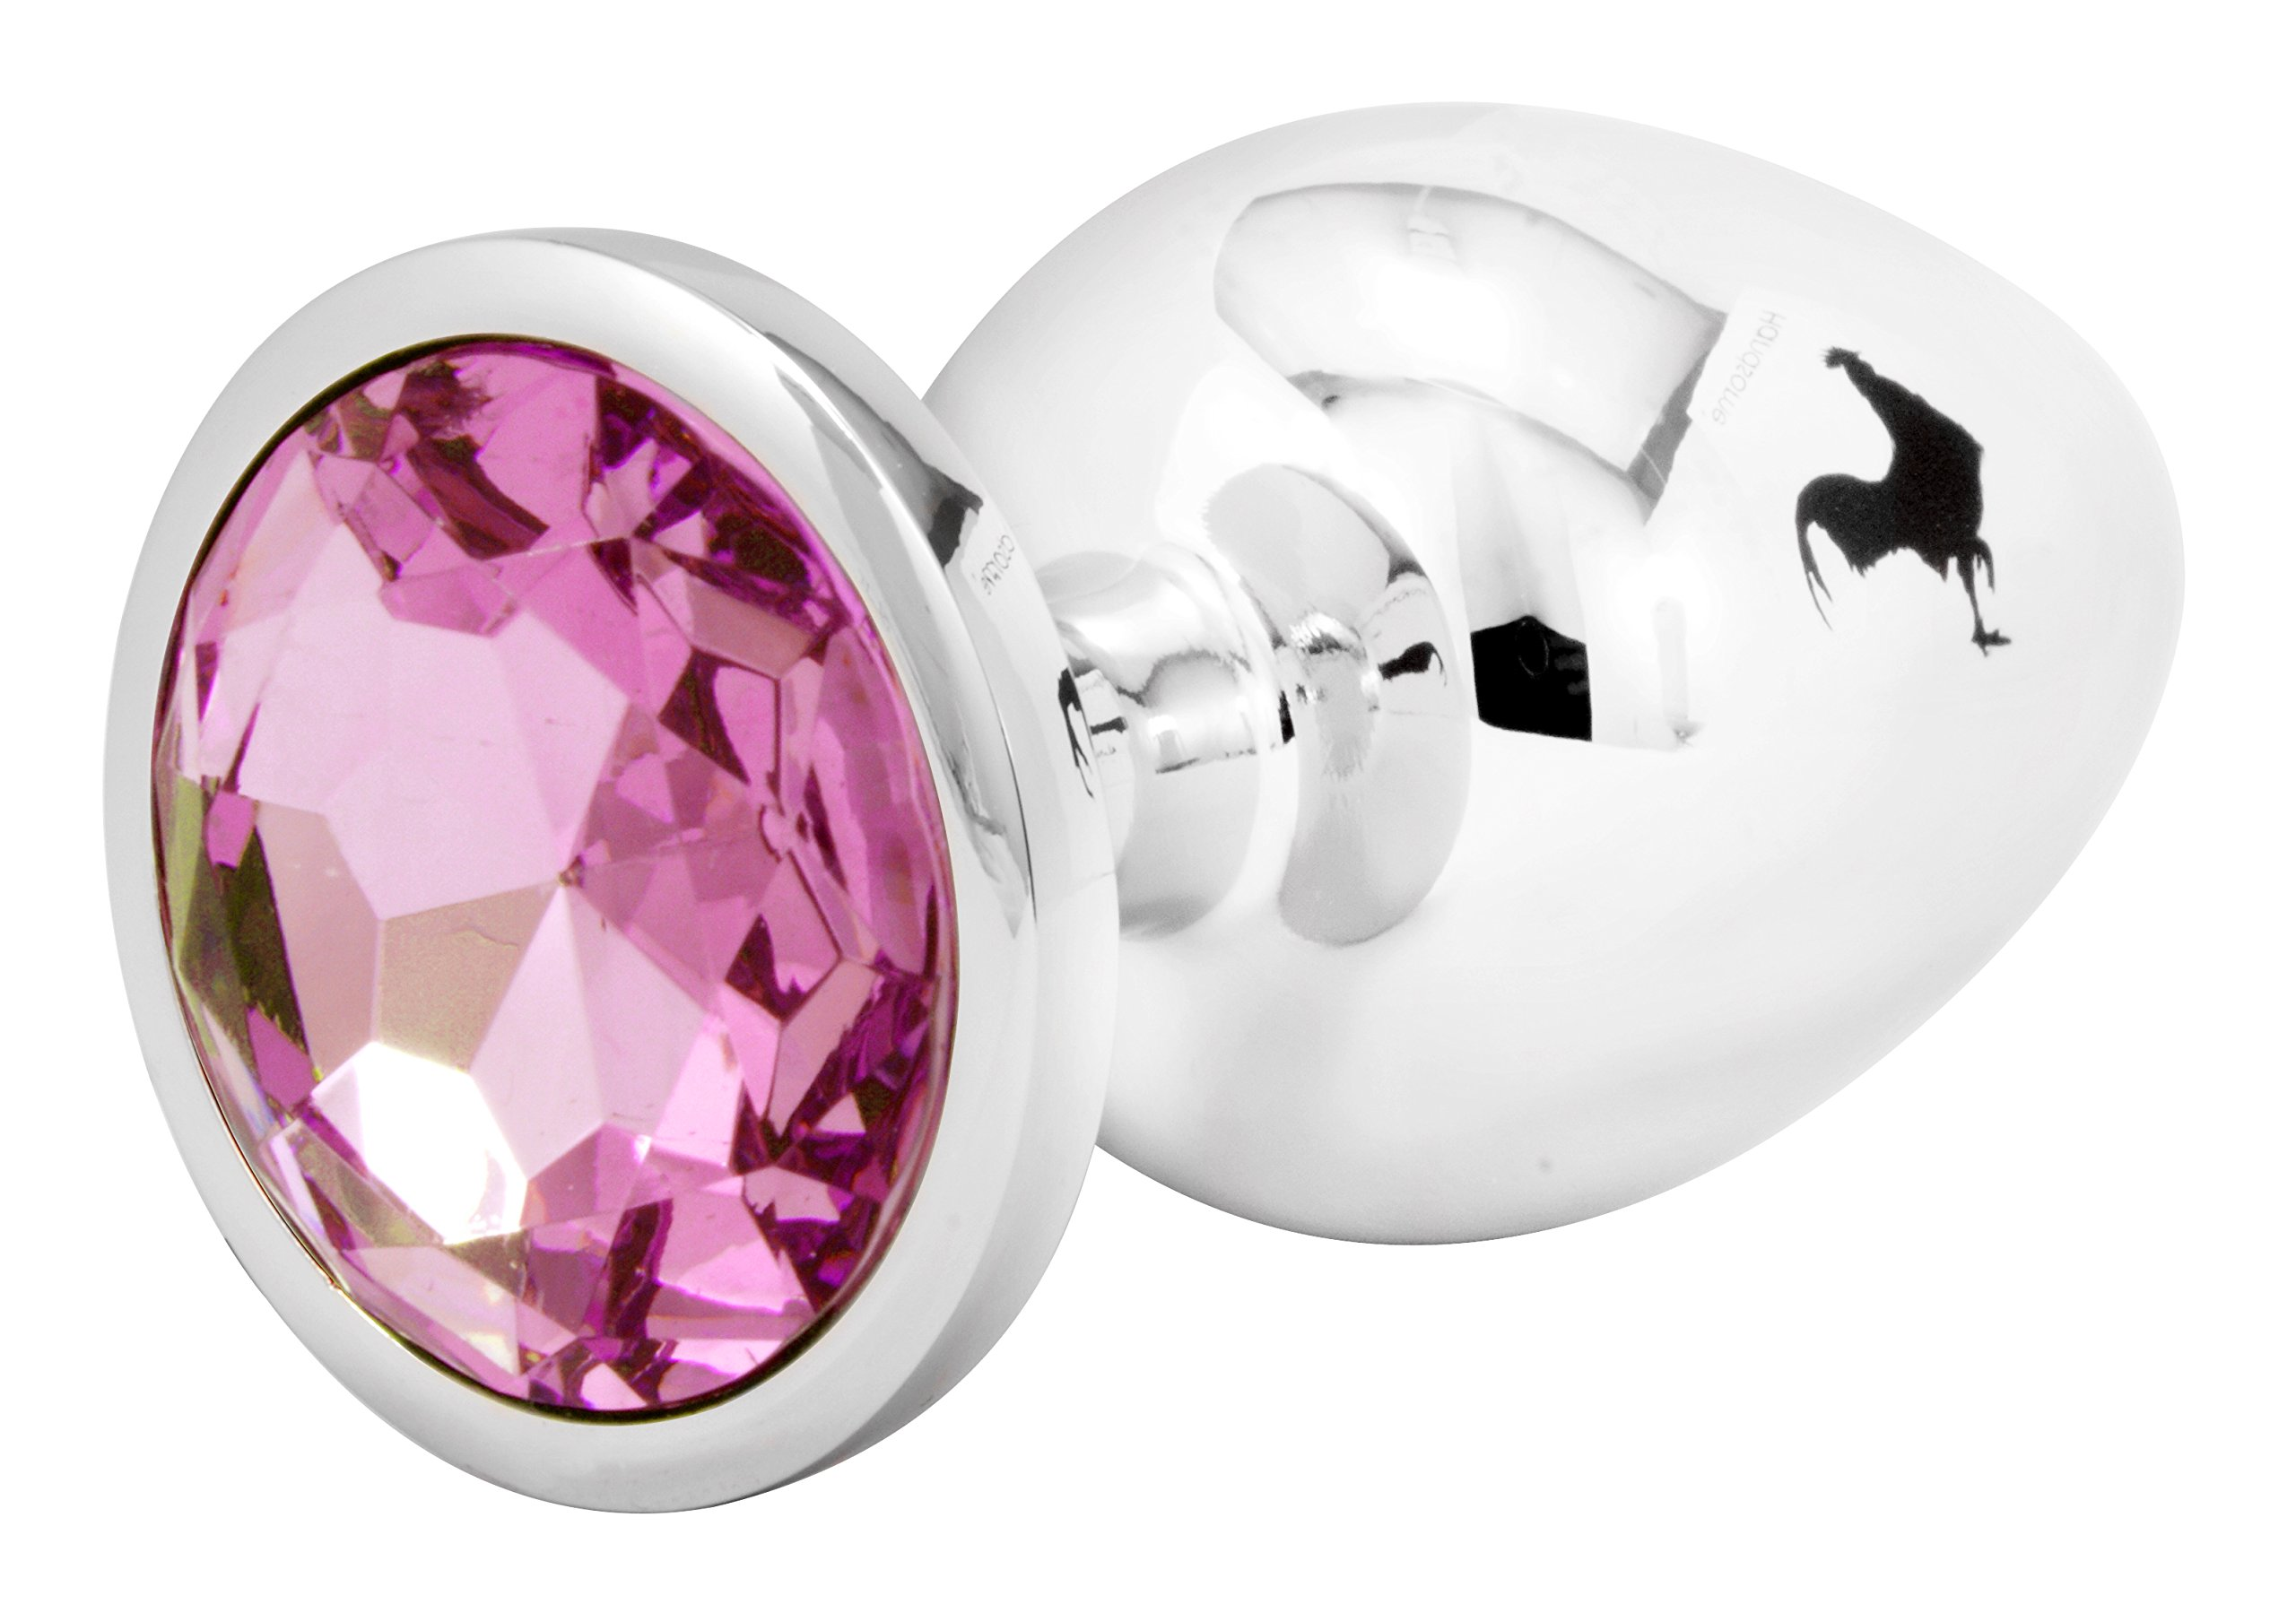 Handsome Cock Large Pink Jewelled Butt Plug